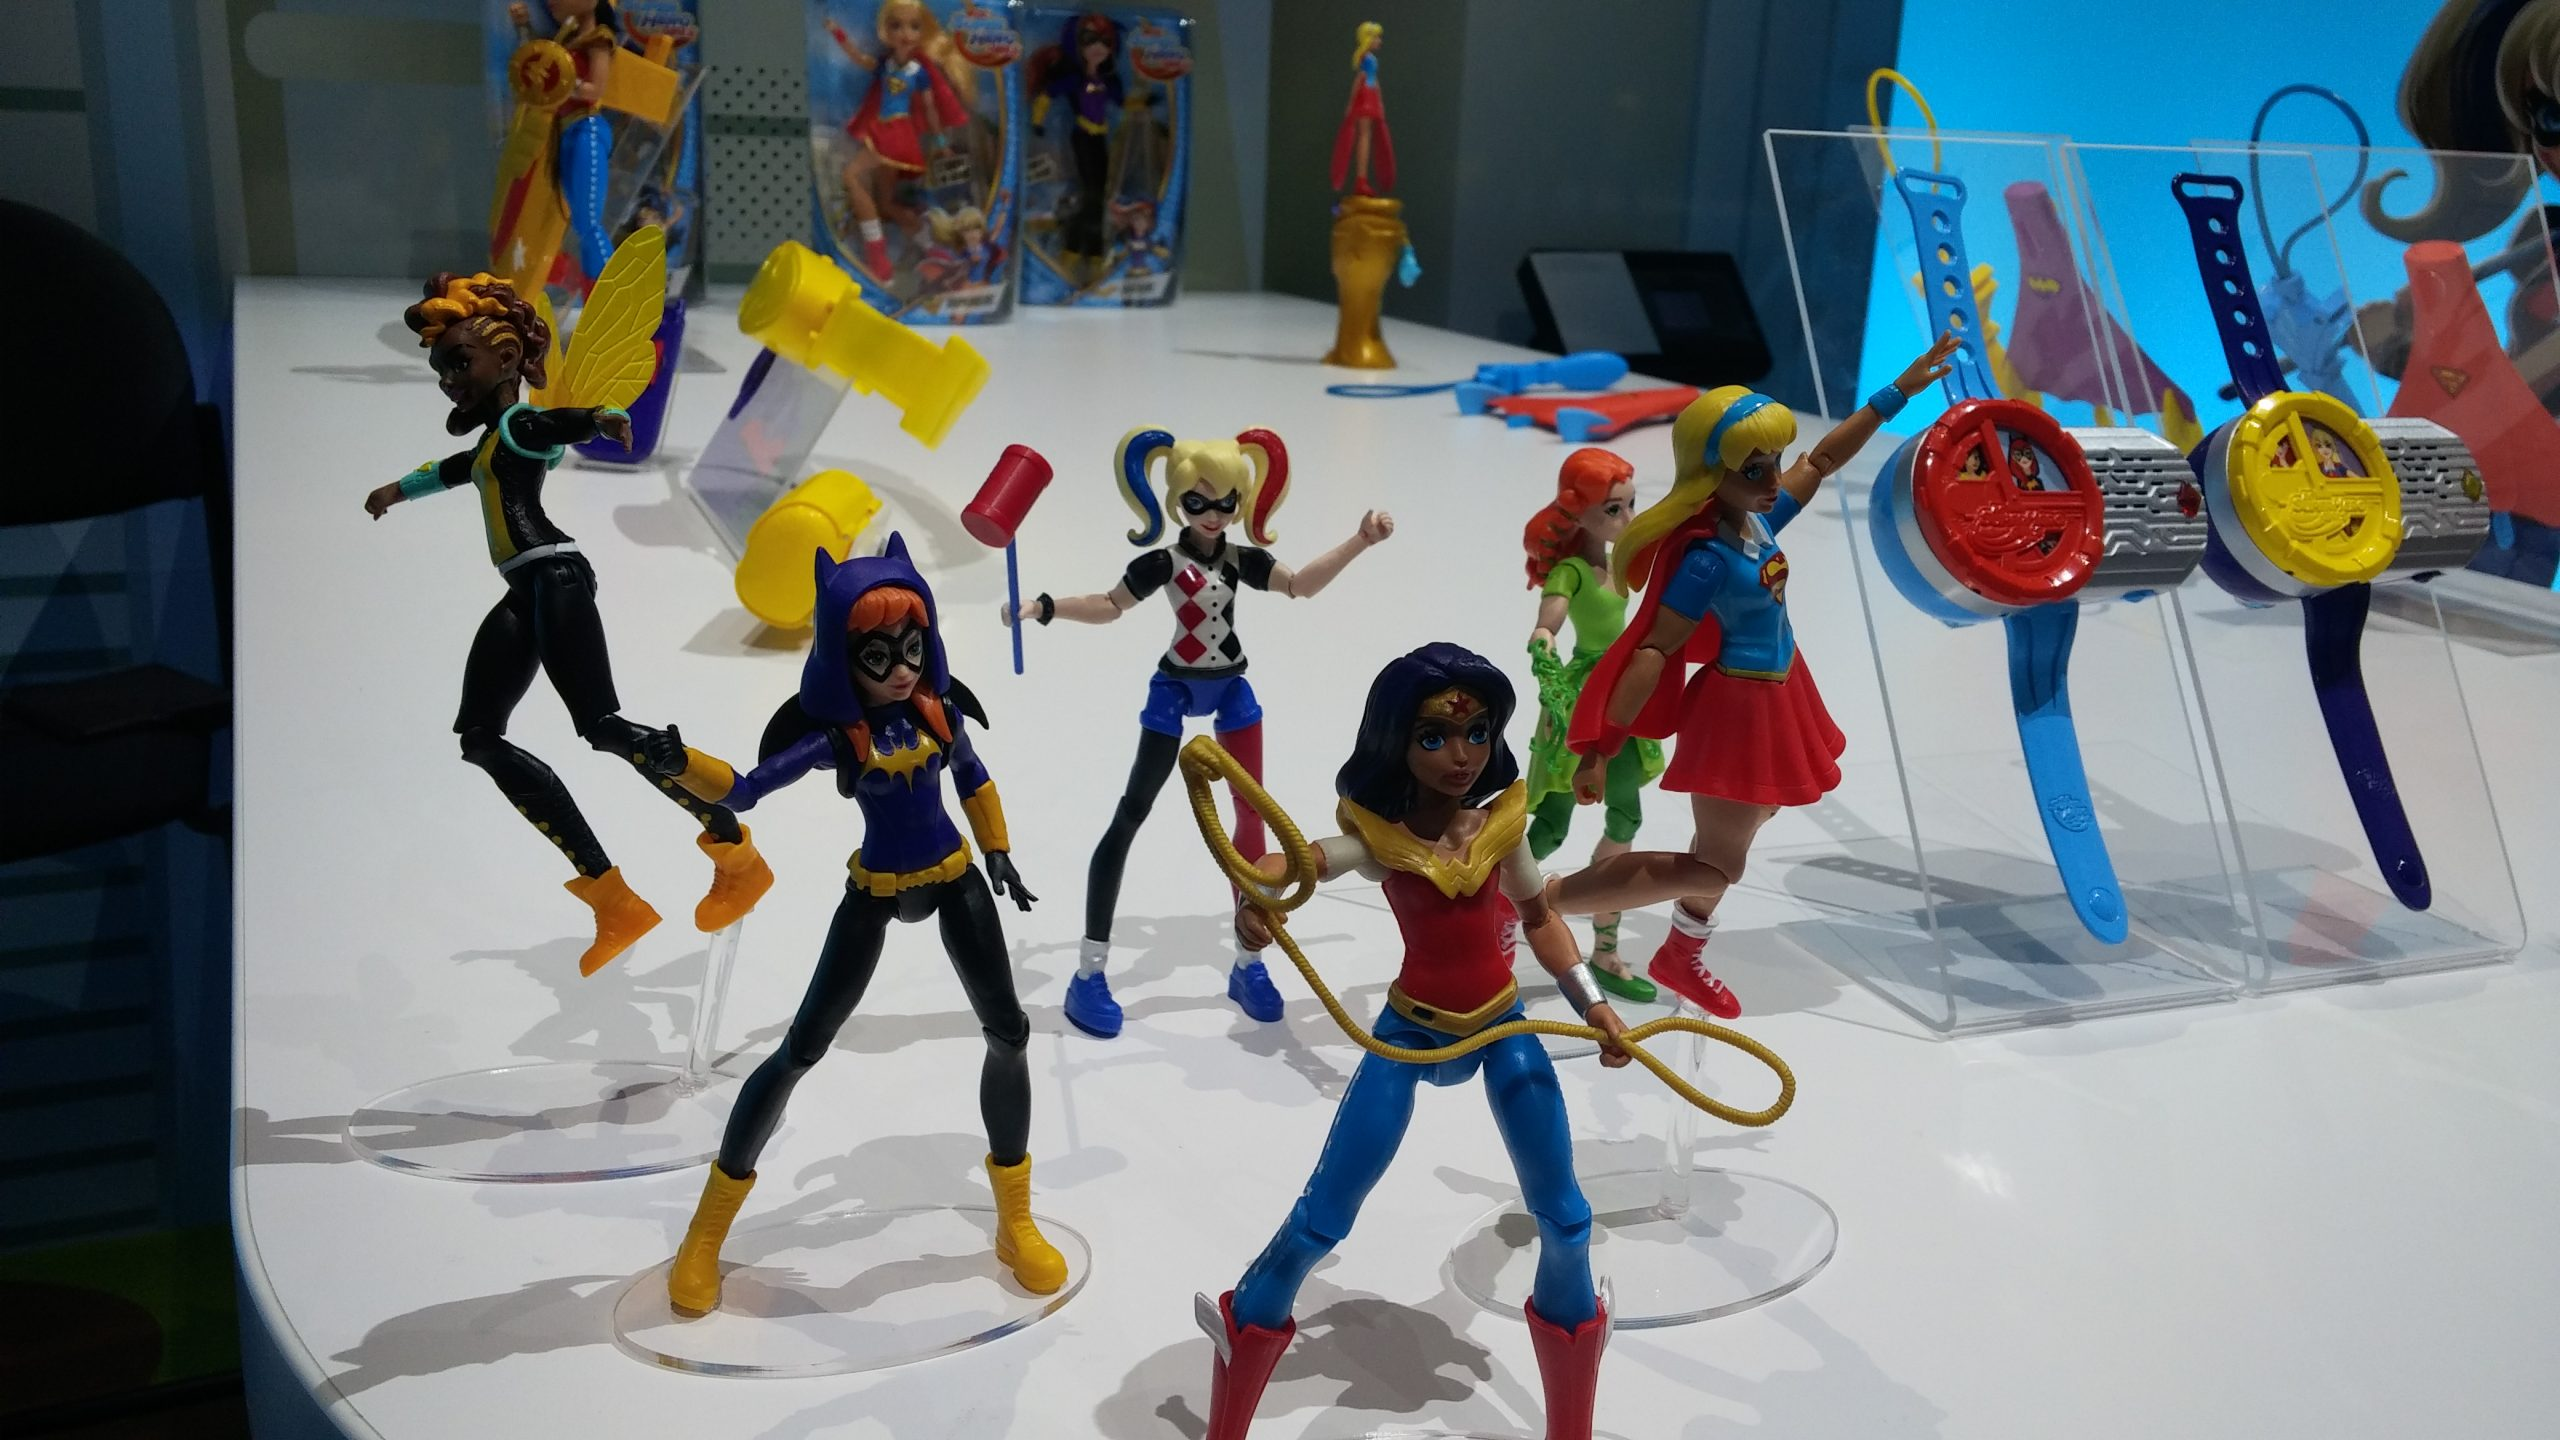 Girl Toy Figures : A brand new barbie mattel at toy fair the geekiary